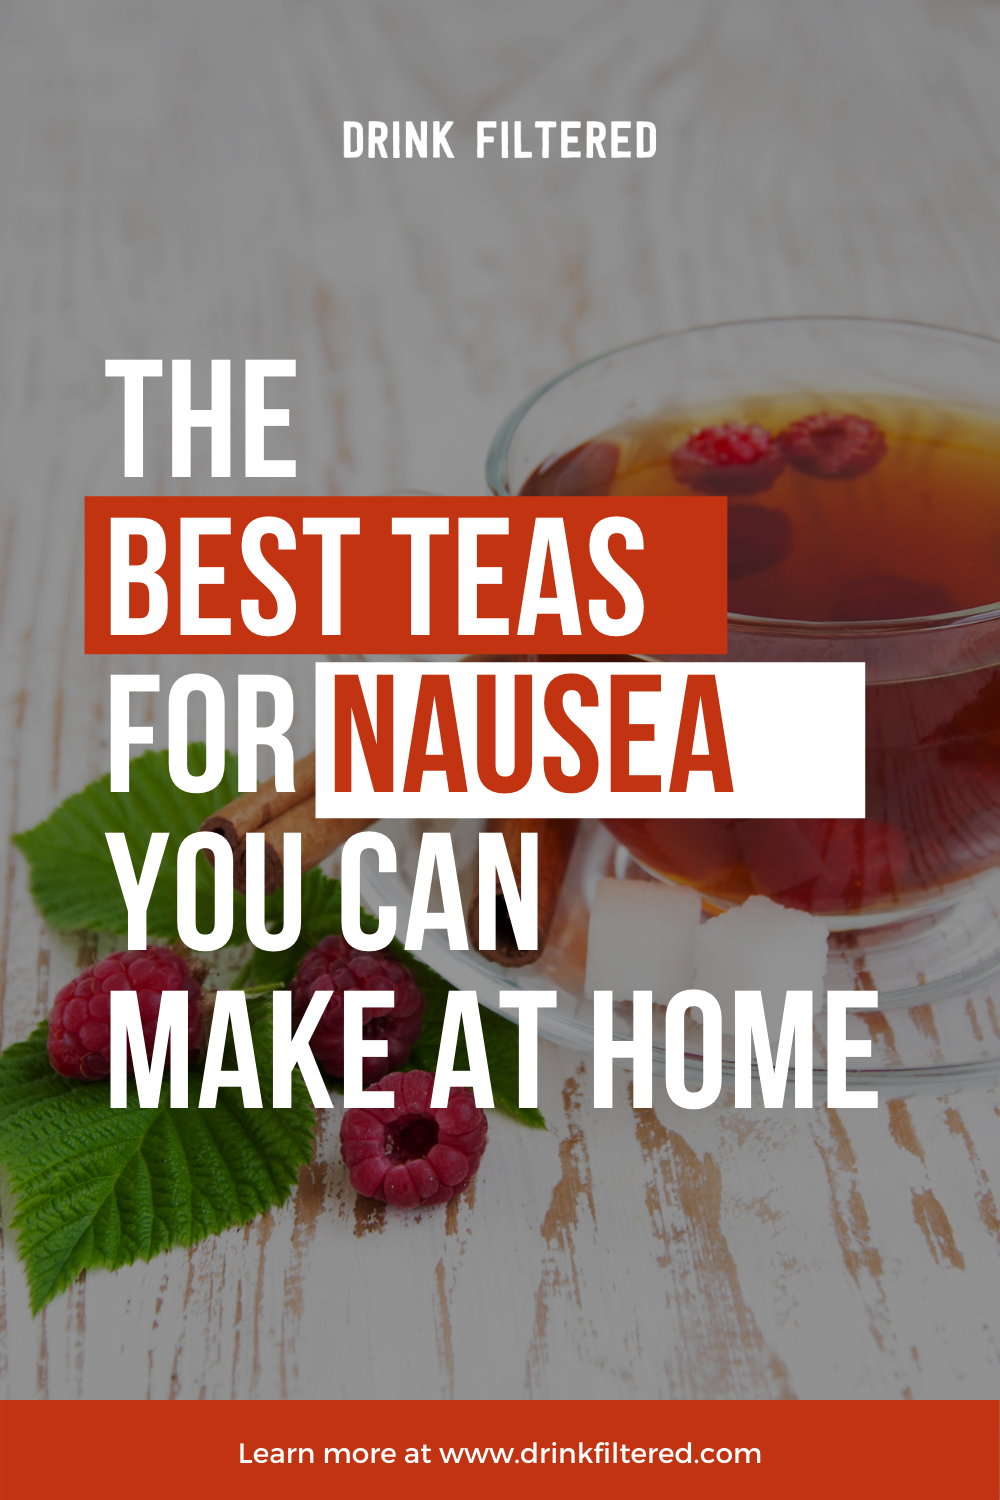 the 10 best teas for nausea that you can make at home